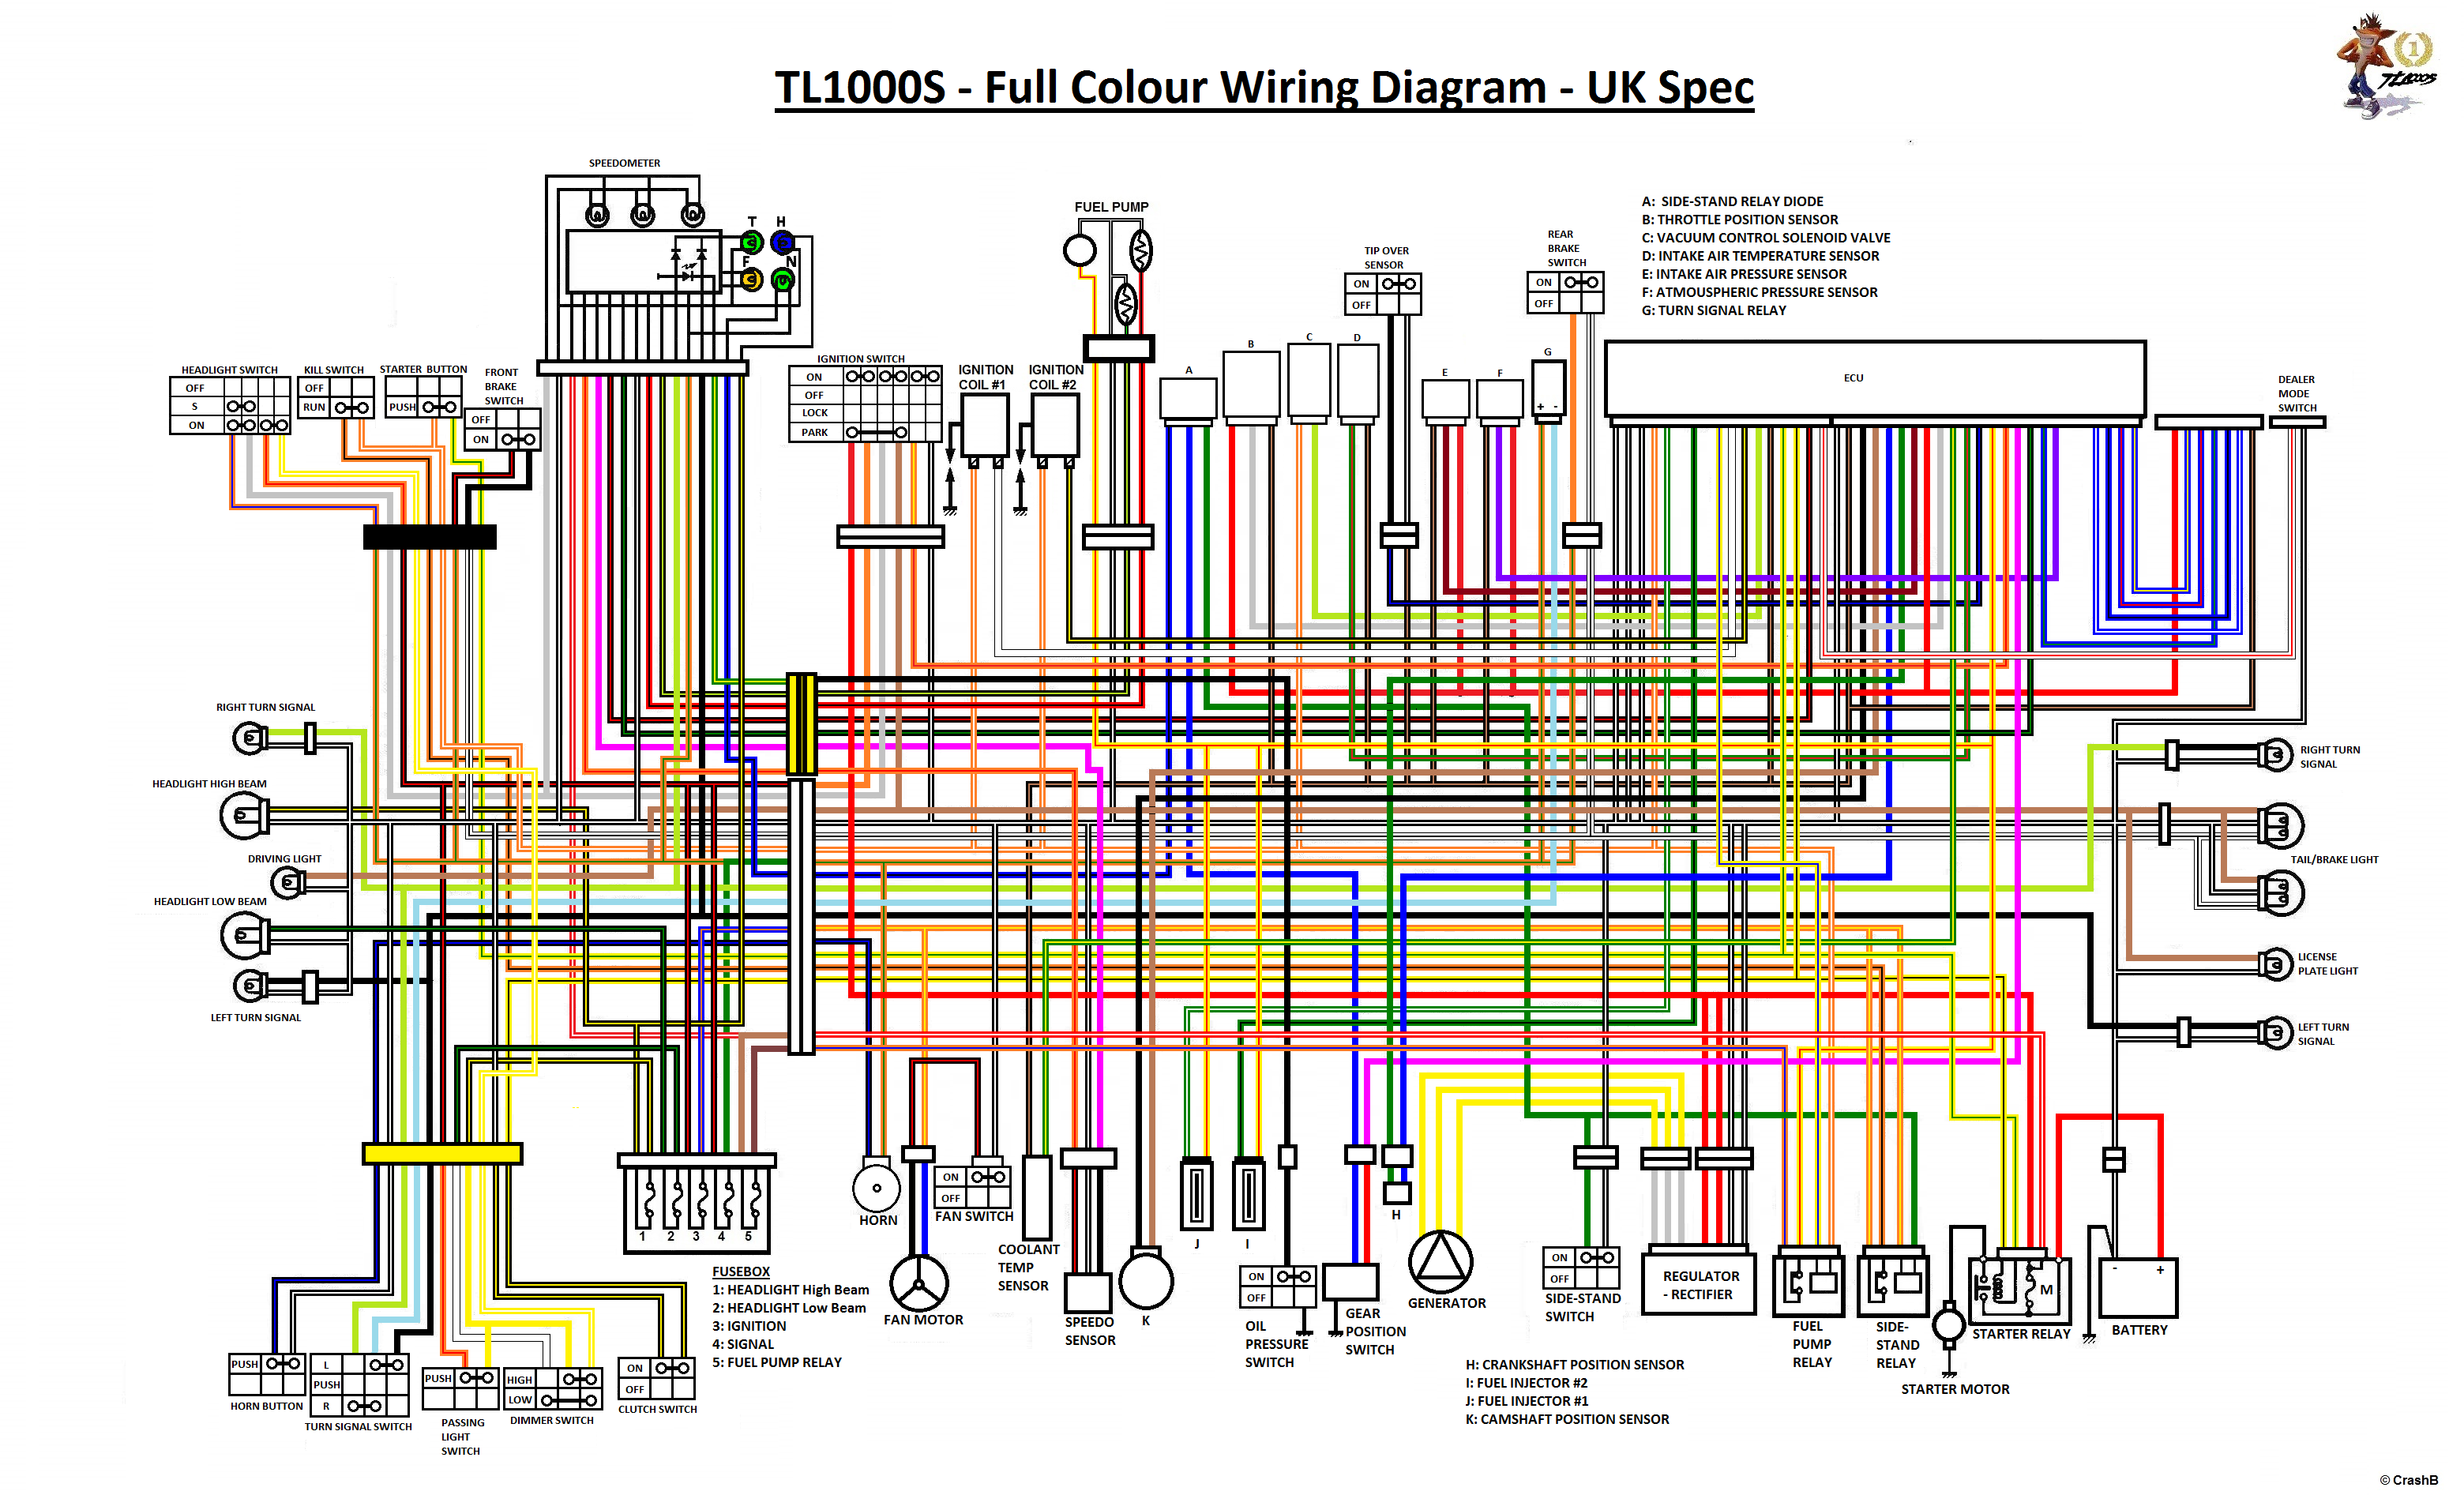 performance bike tl1000r article review full colour uk tls wiring diagram click here for full colour us tls wiring diagram full colour tlr wiring diagrams coming soon